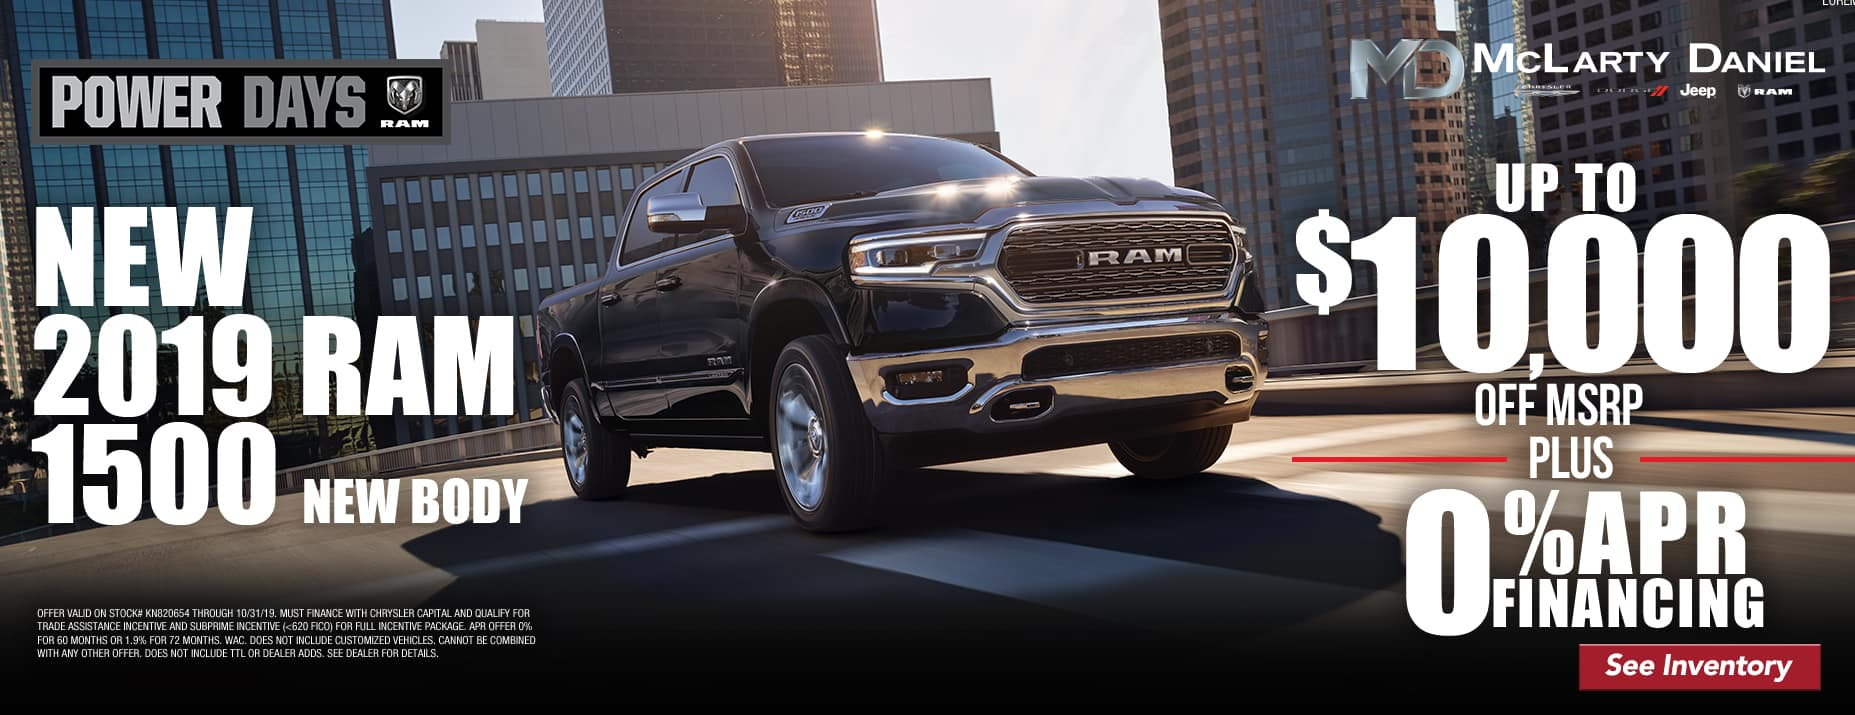 2019 Ram 1500 - Up to $10,000 off msrp -PLUS- 0% APR financing!